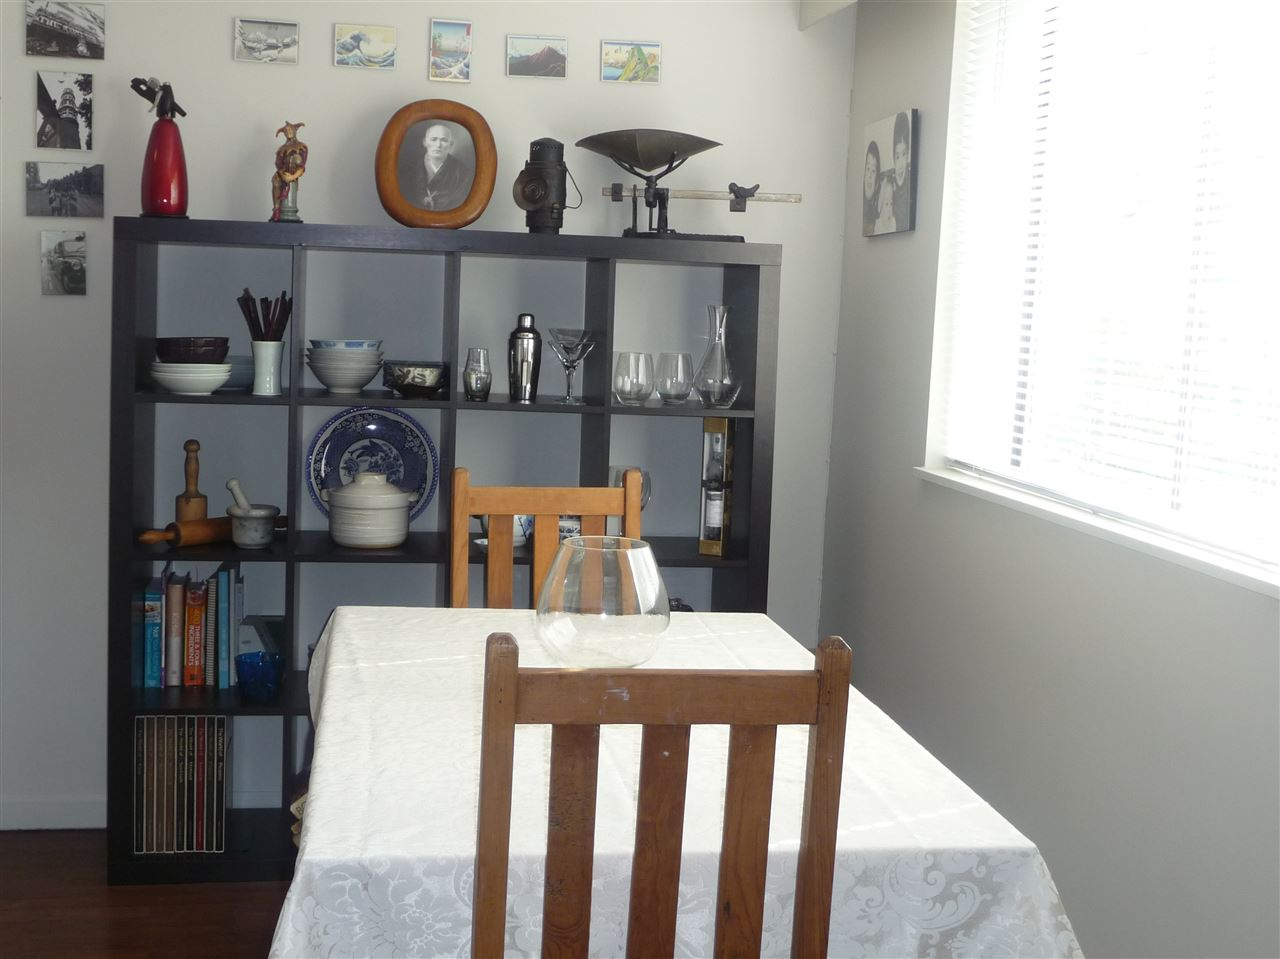 Photo 5: 103 2910 ONTARIO STREET in Vancouver: Mount Pleasant VE Condo for sale (Vancouver East)  : MLS® # R2058838